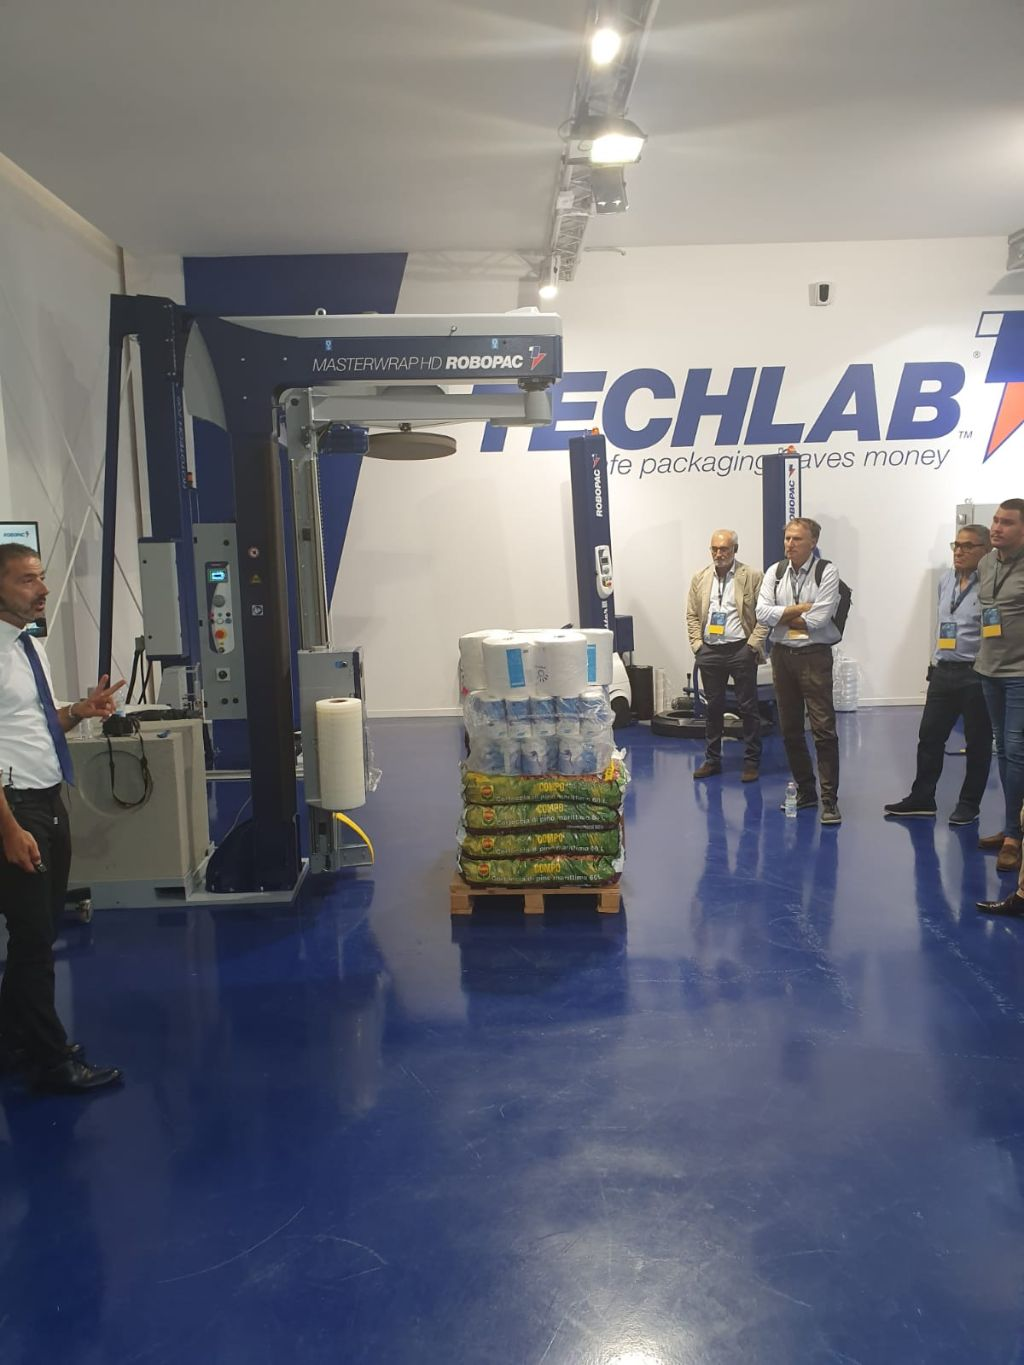 Meeting Robopac 2019 - foto 3.JPG Robopac dealer meeting 2019 - foto 3